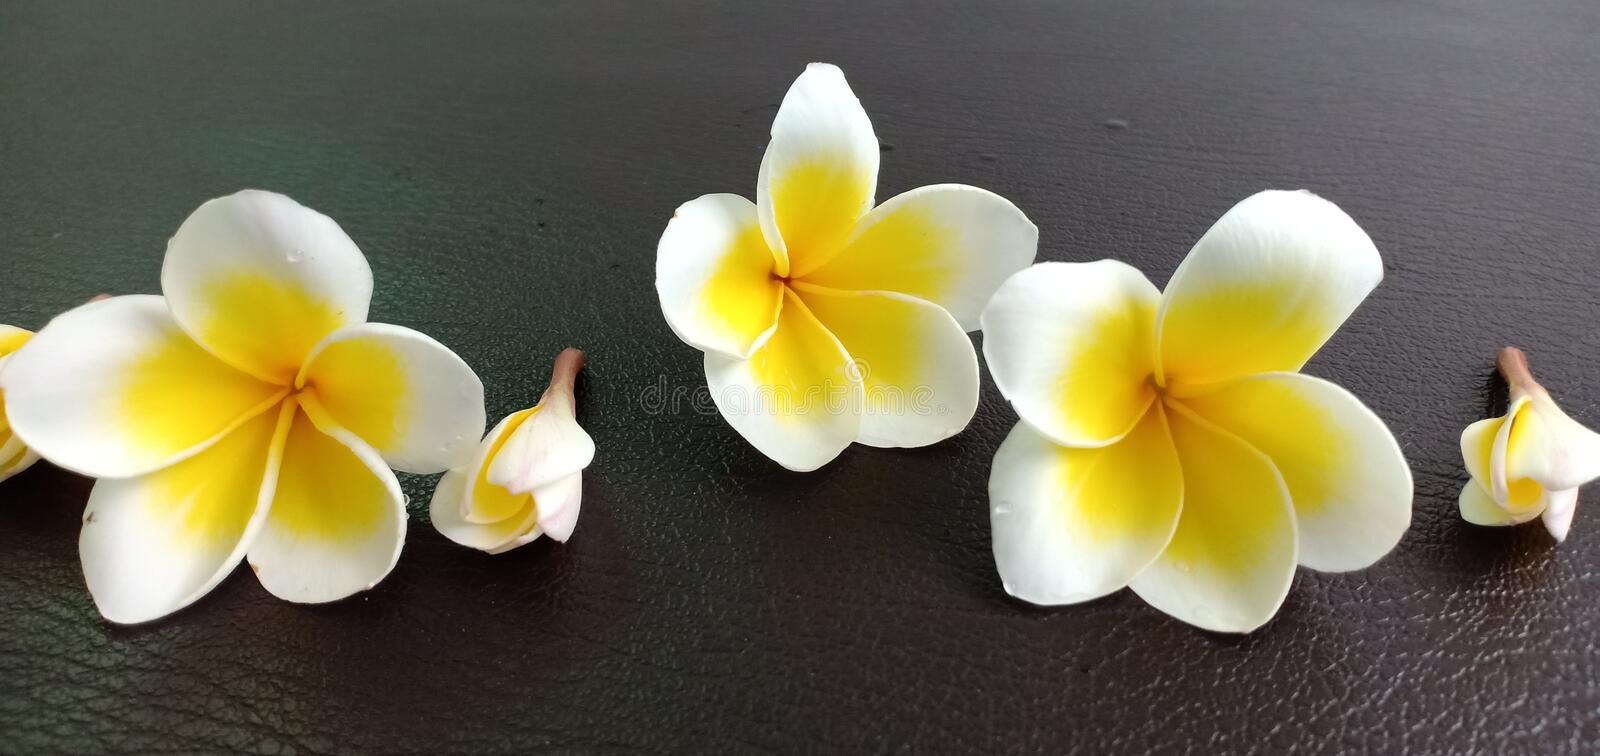 Champaka white flowers. On the leather floor stock photos